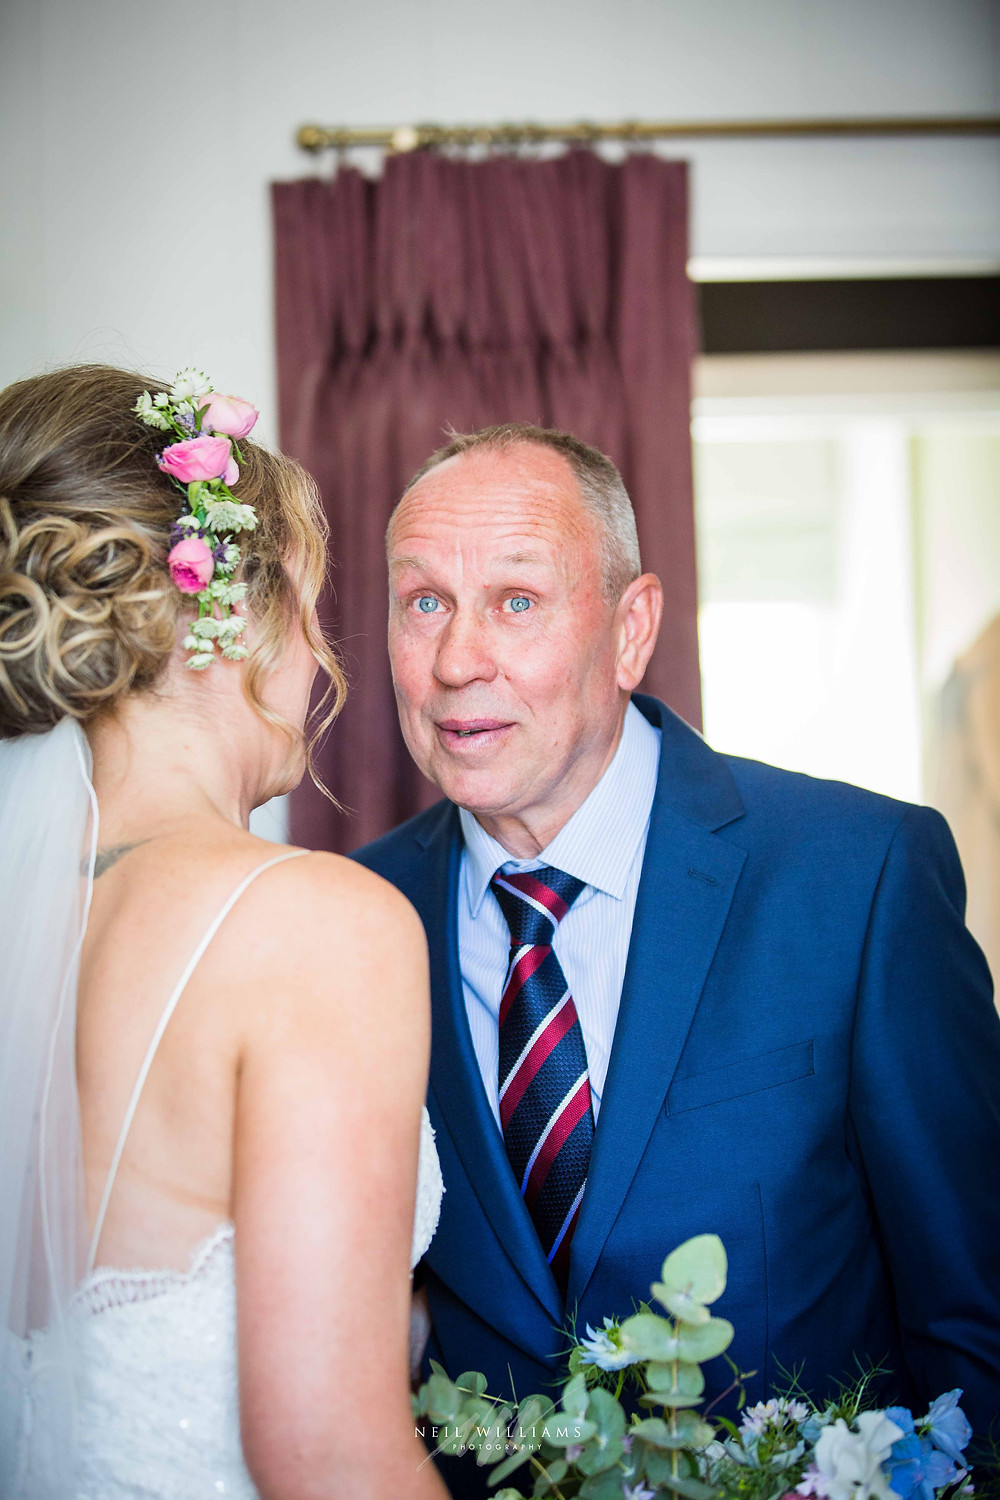 pembrokeshire, wedding, photography, neil, williams, south wales photographer, cardiff, swansea, carmarthen, bristol, cotswolds, llys meddyg, rustic, alternative, boho, father of the bride,